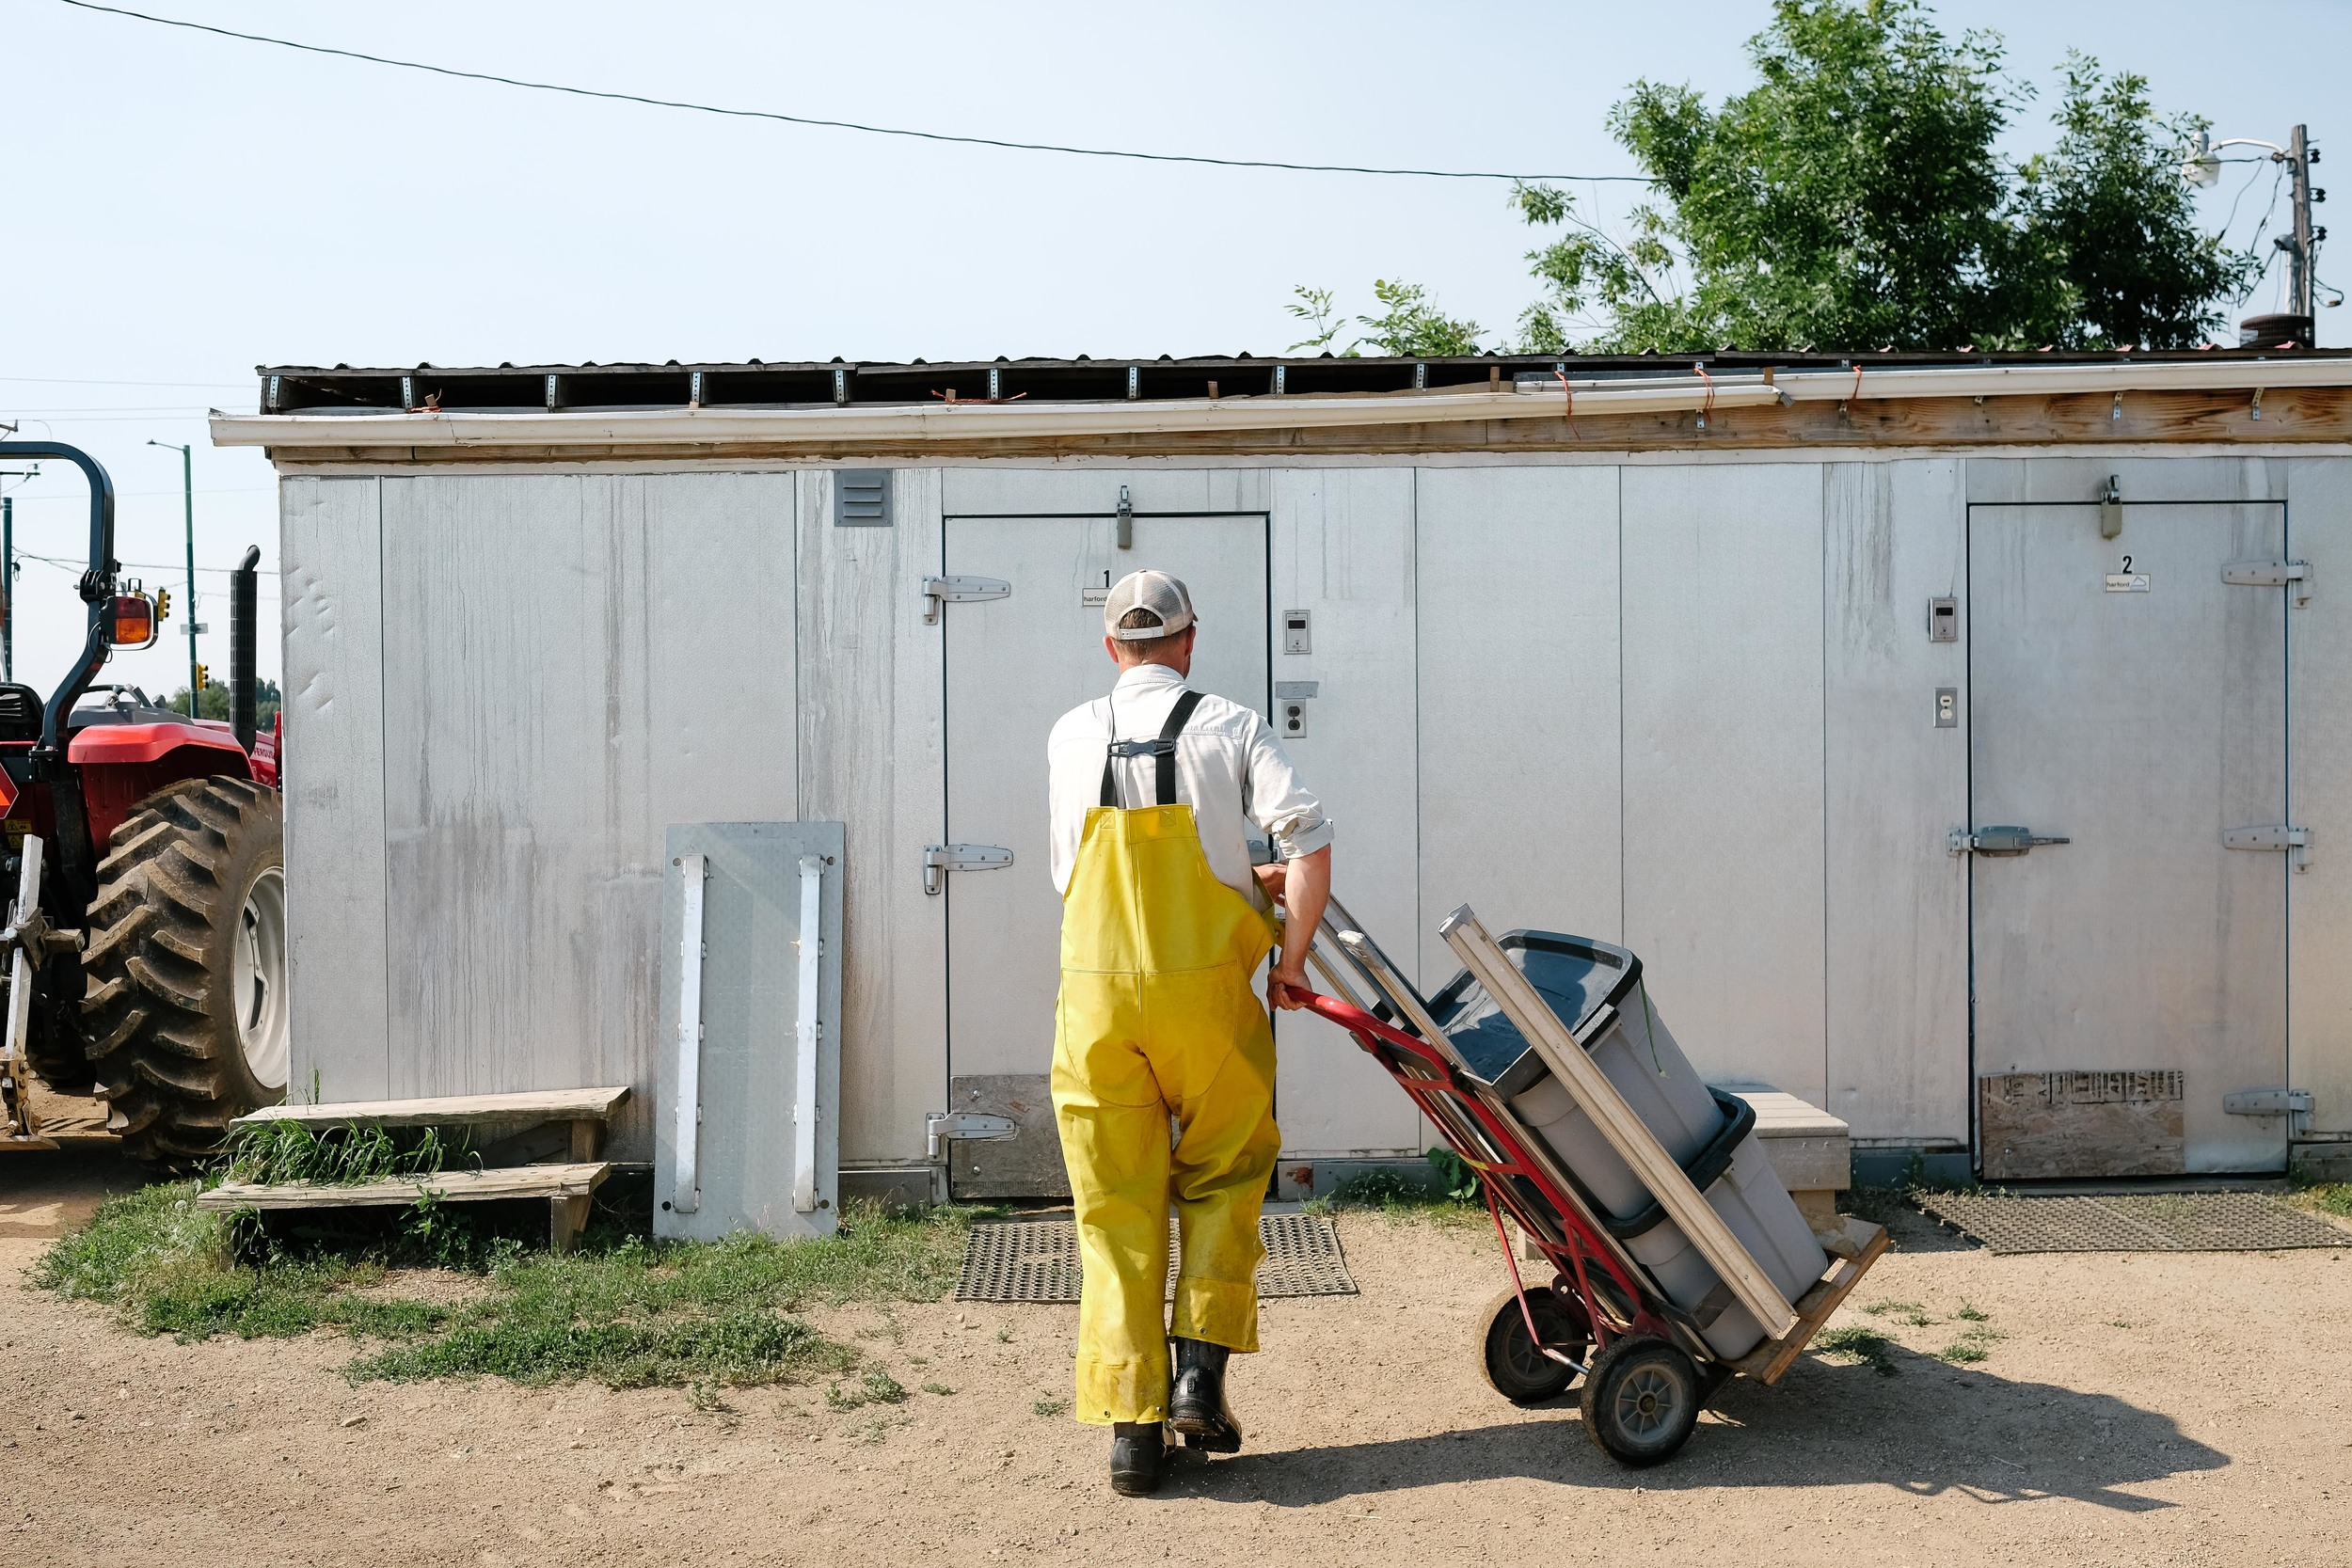 All of the farm's vegetables are stored in walk-in refrigerators after being trimmed and washed.